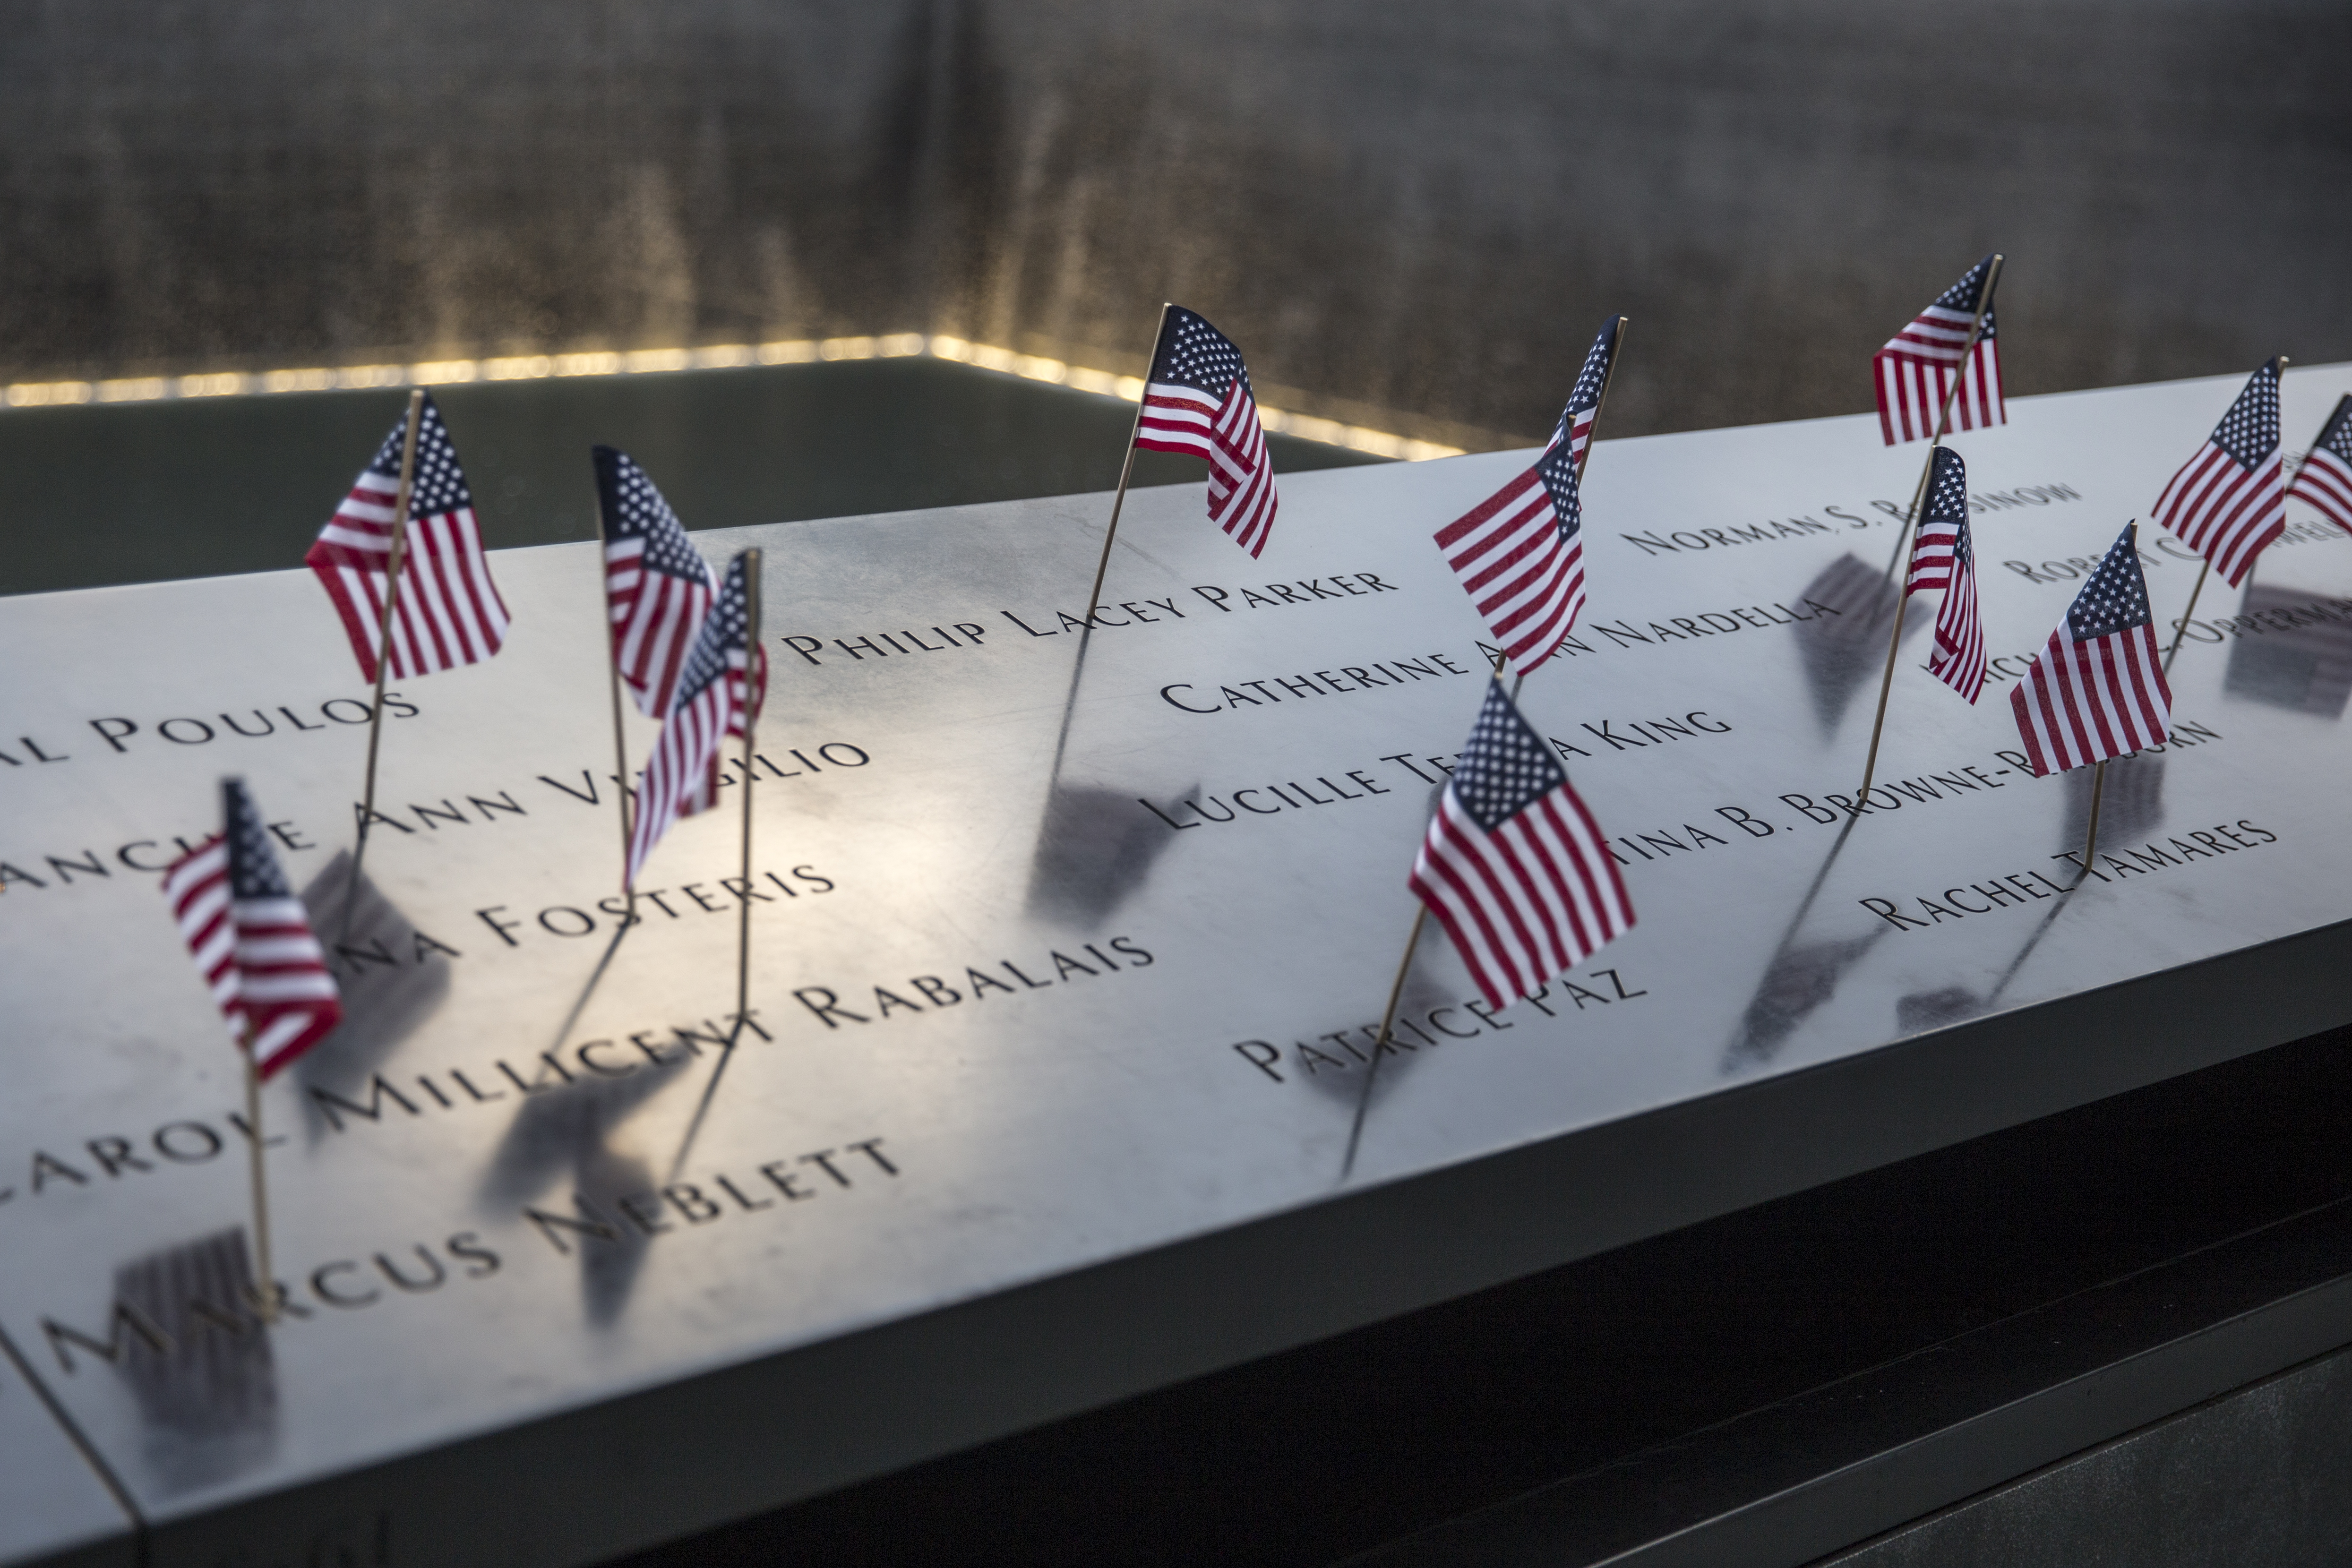 Small American flags are placed in all 2,983 names on the 9/11 Memorial on July 4, 2017 in the Manhattan borough of New York City.